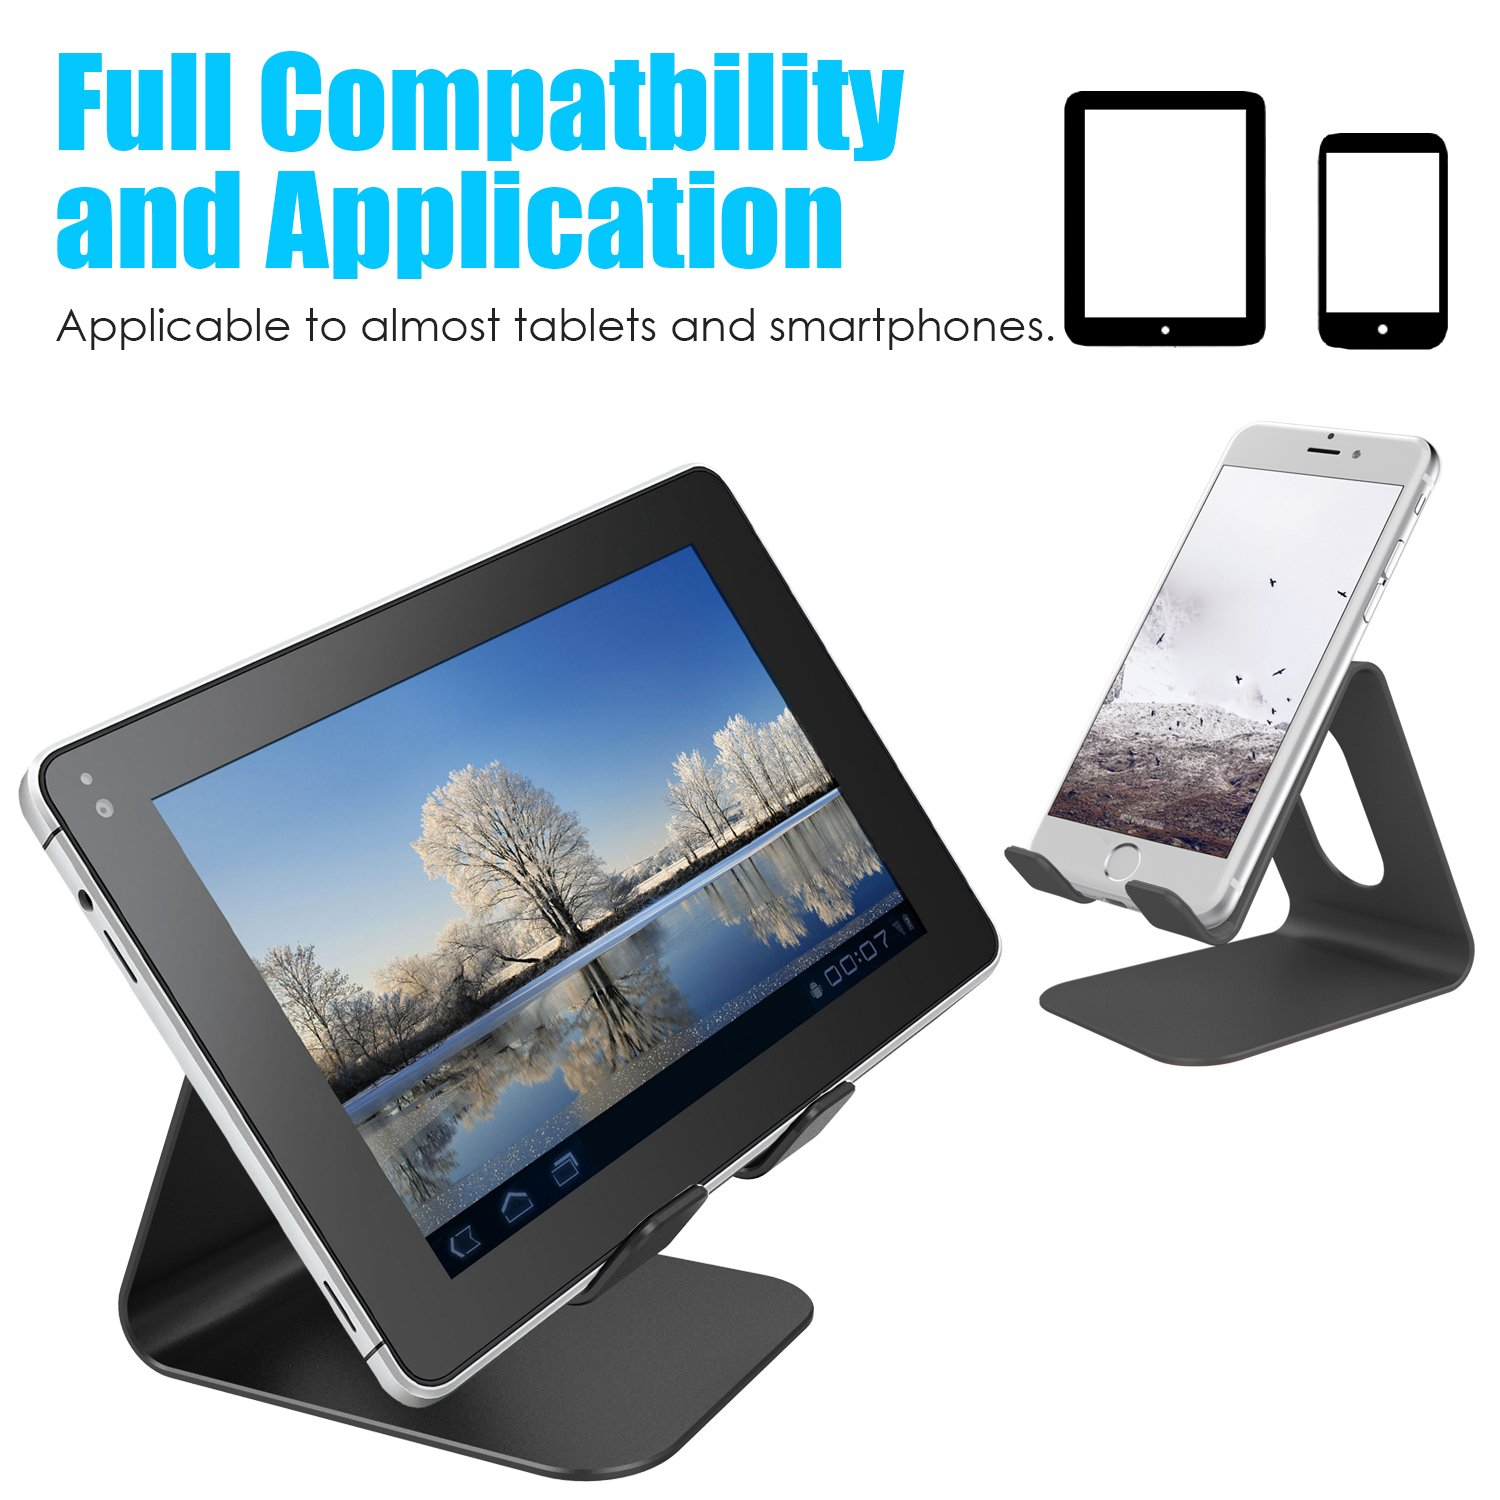 Barsone Tablet Stand, Cell Phone Stand, Universal Desktop mobile phone Holder, Aluminium Metal Mobile Phone Tablet PC stand Table Desk Mount Stand Holder (Black)